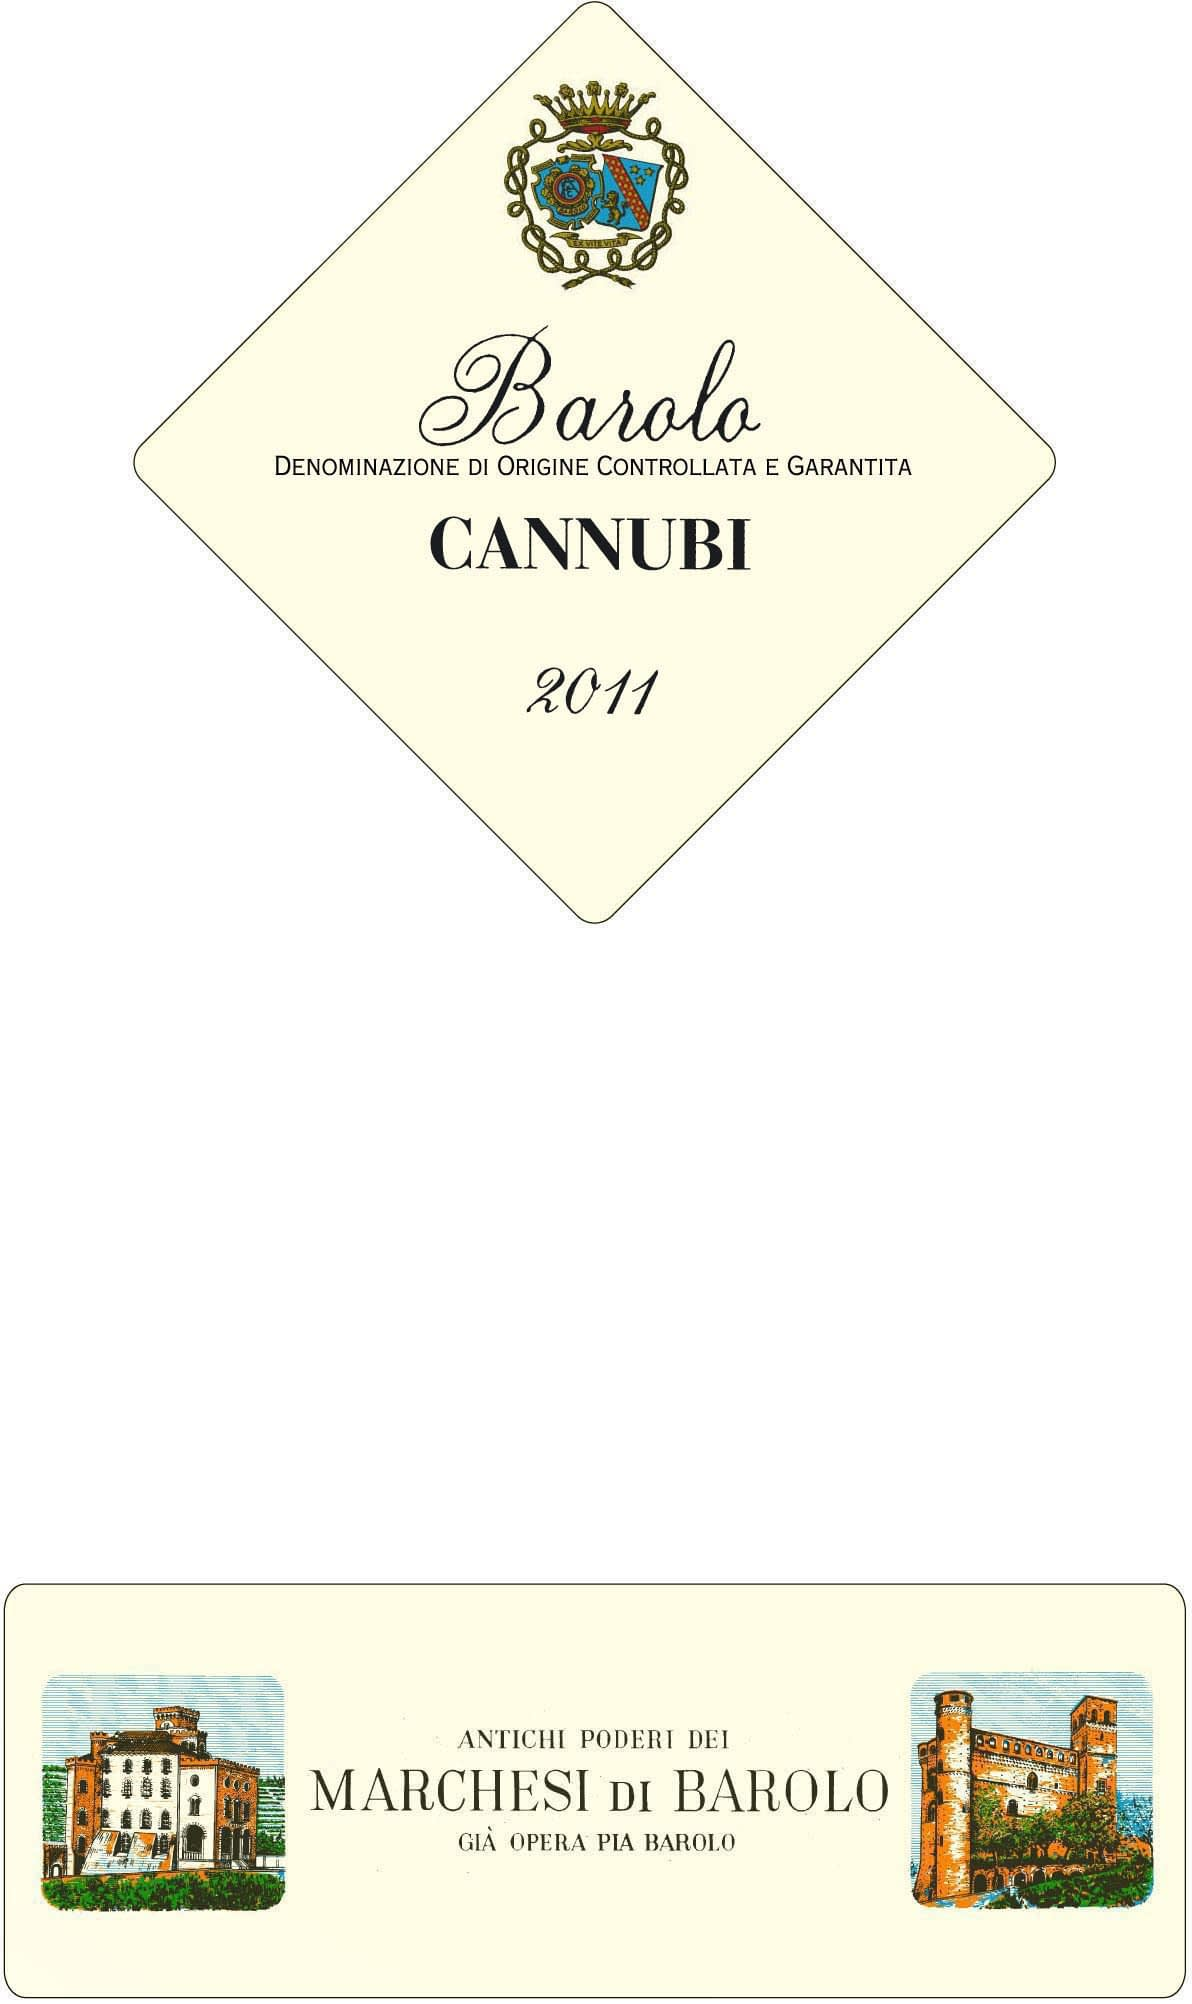 Marchesi di Barolo Cannubi 2011 - only 1 bottle left!